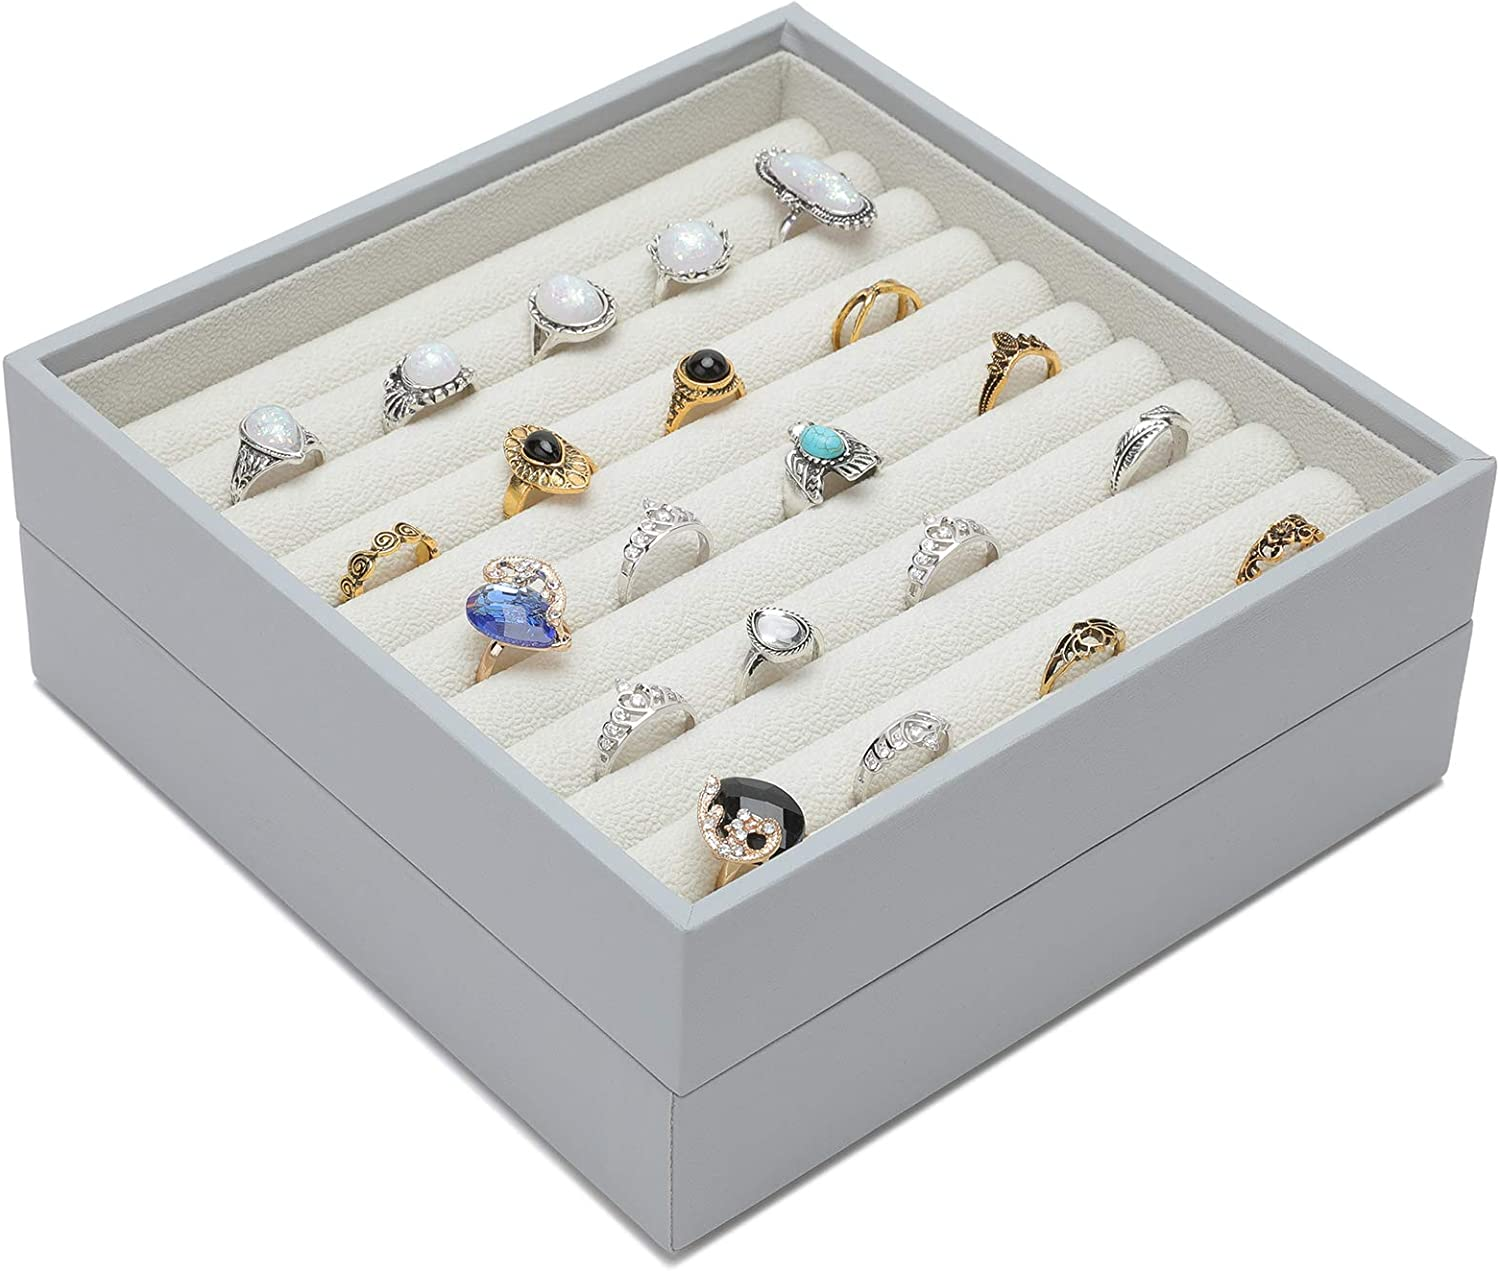 Magic Stackable Jewelry Trays Closet Dresser Drawer Organizer for Rings, Cuff Links, Storage Display Showcase Holder Box, Set of 2